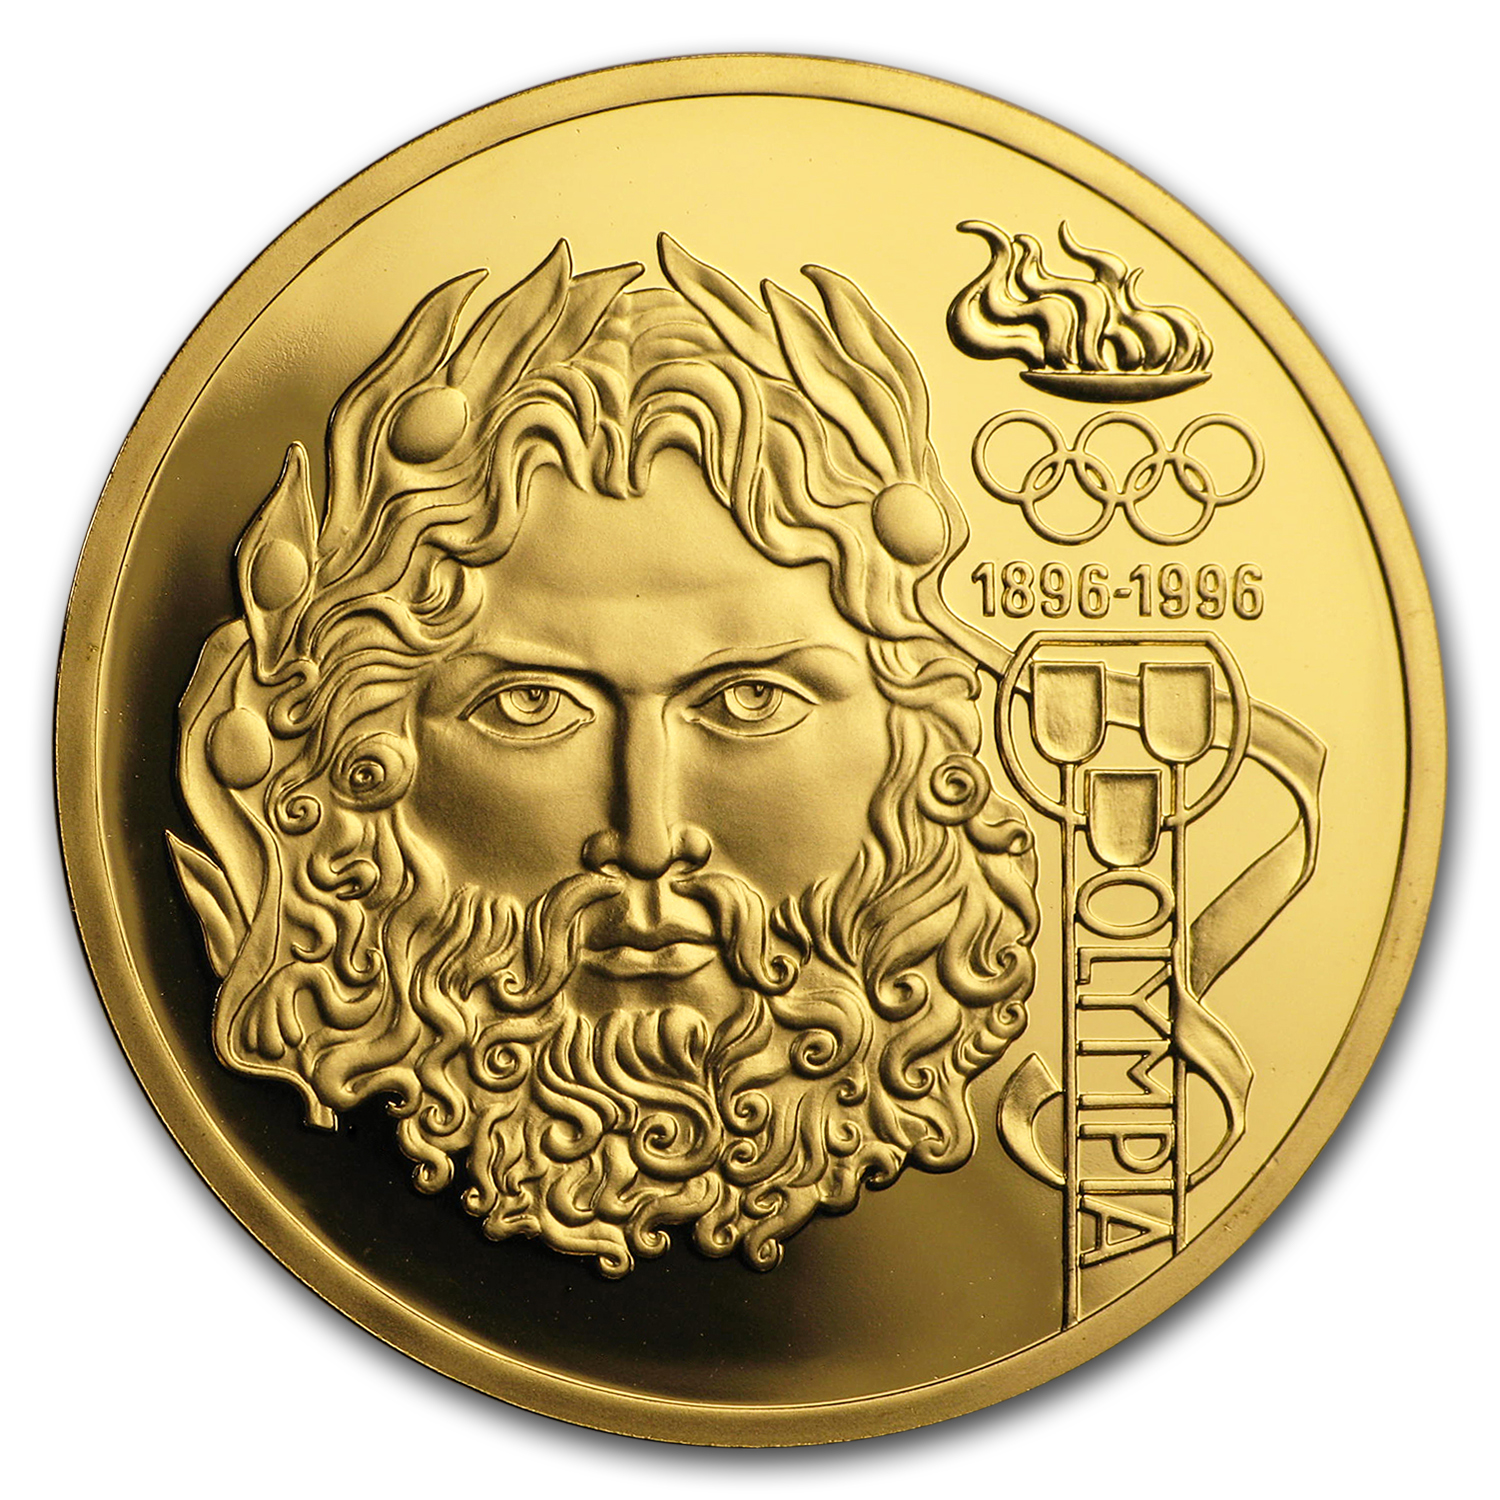 1995 Austria Gold 1000 Schilling Olympics Proof